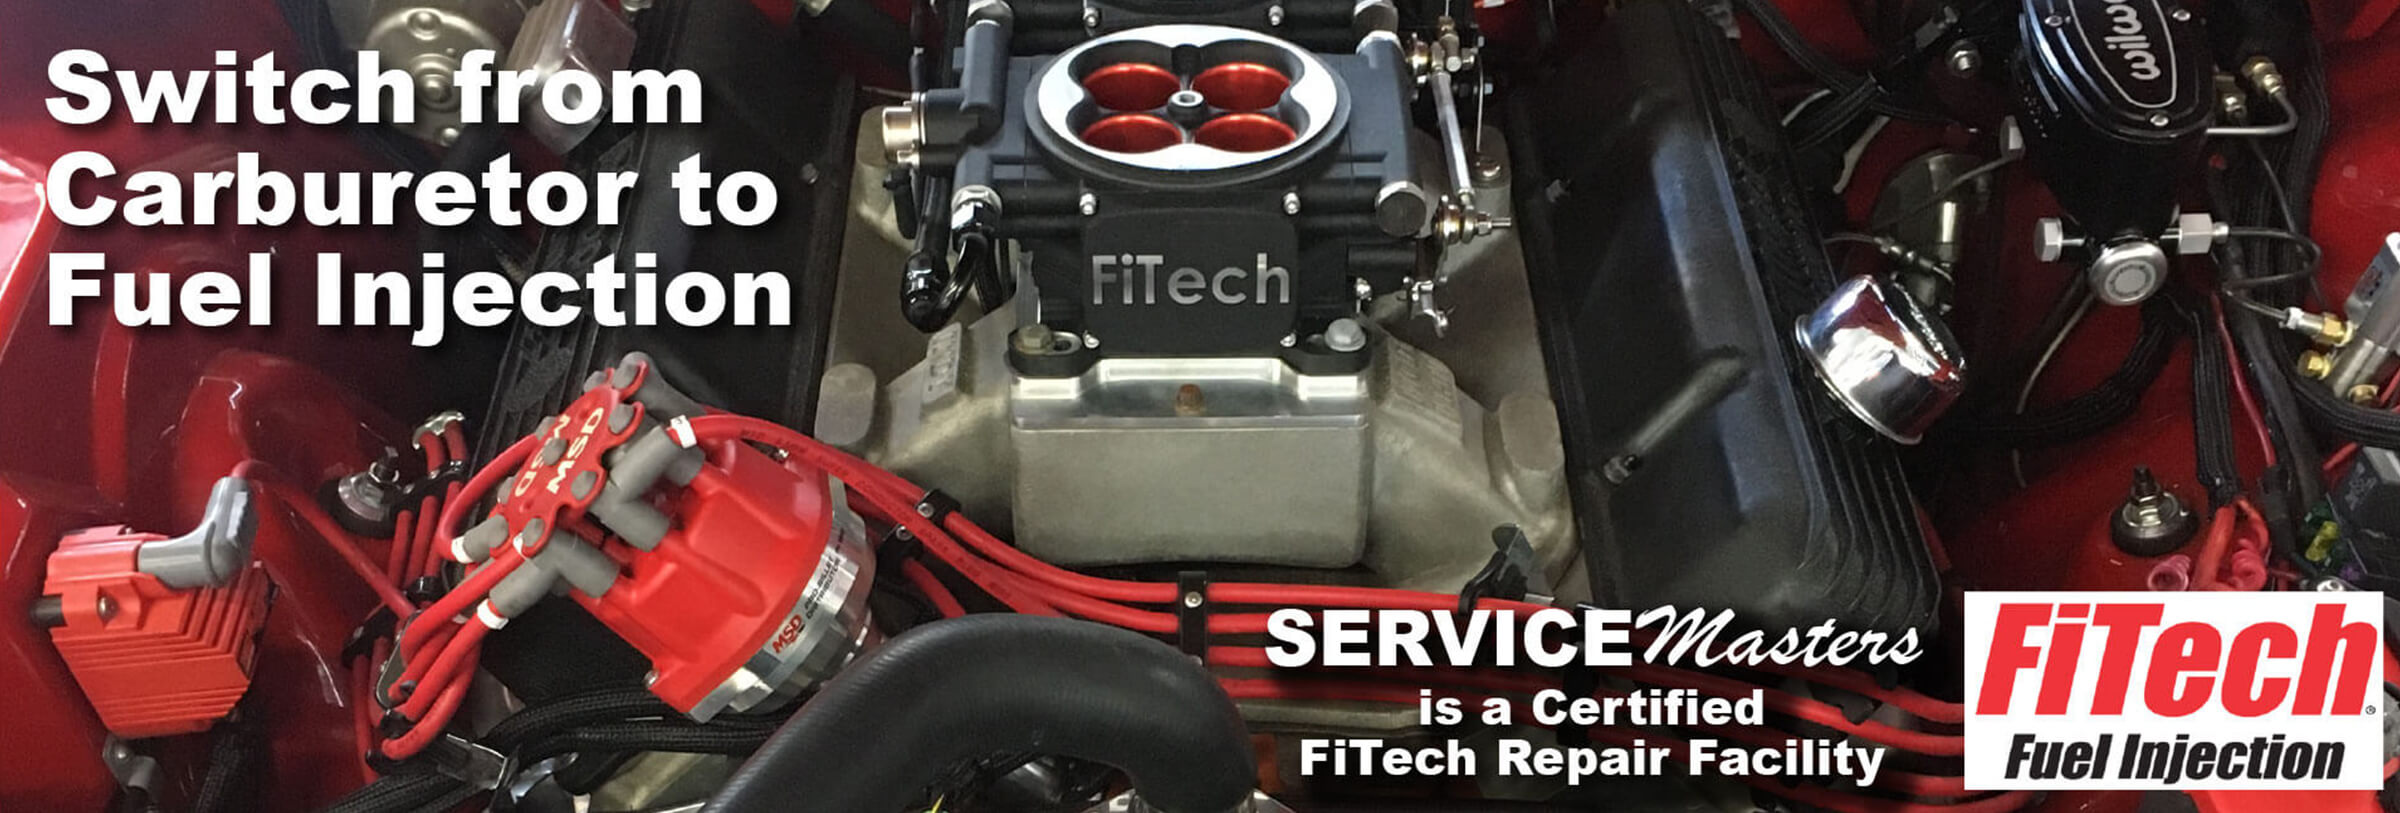 FiTech - Service Masters